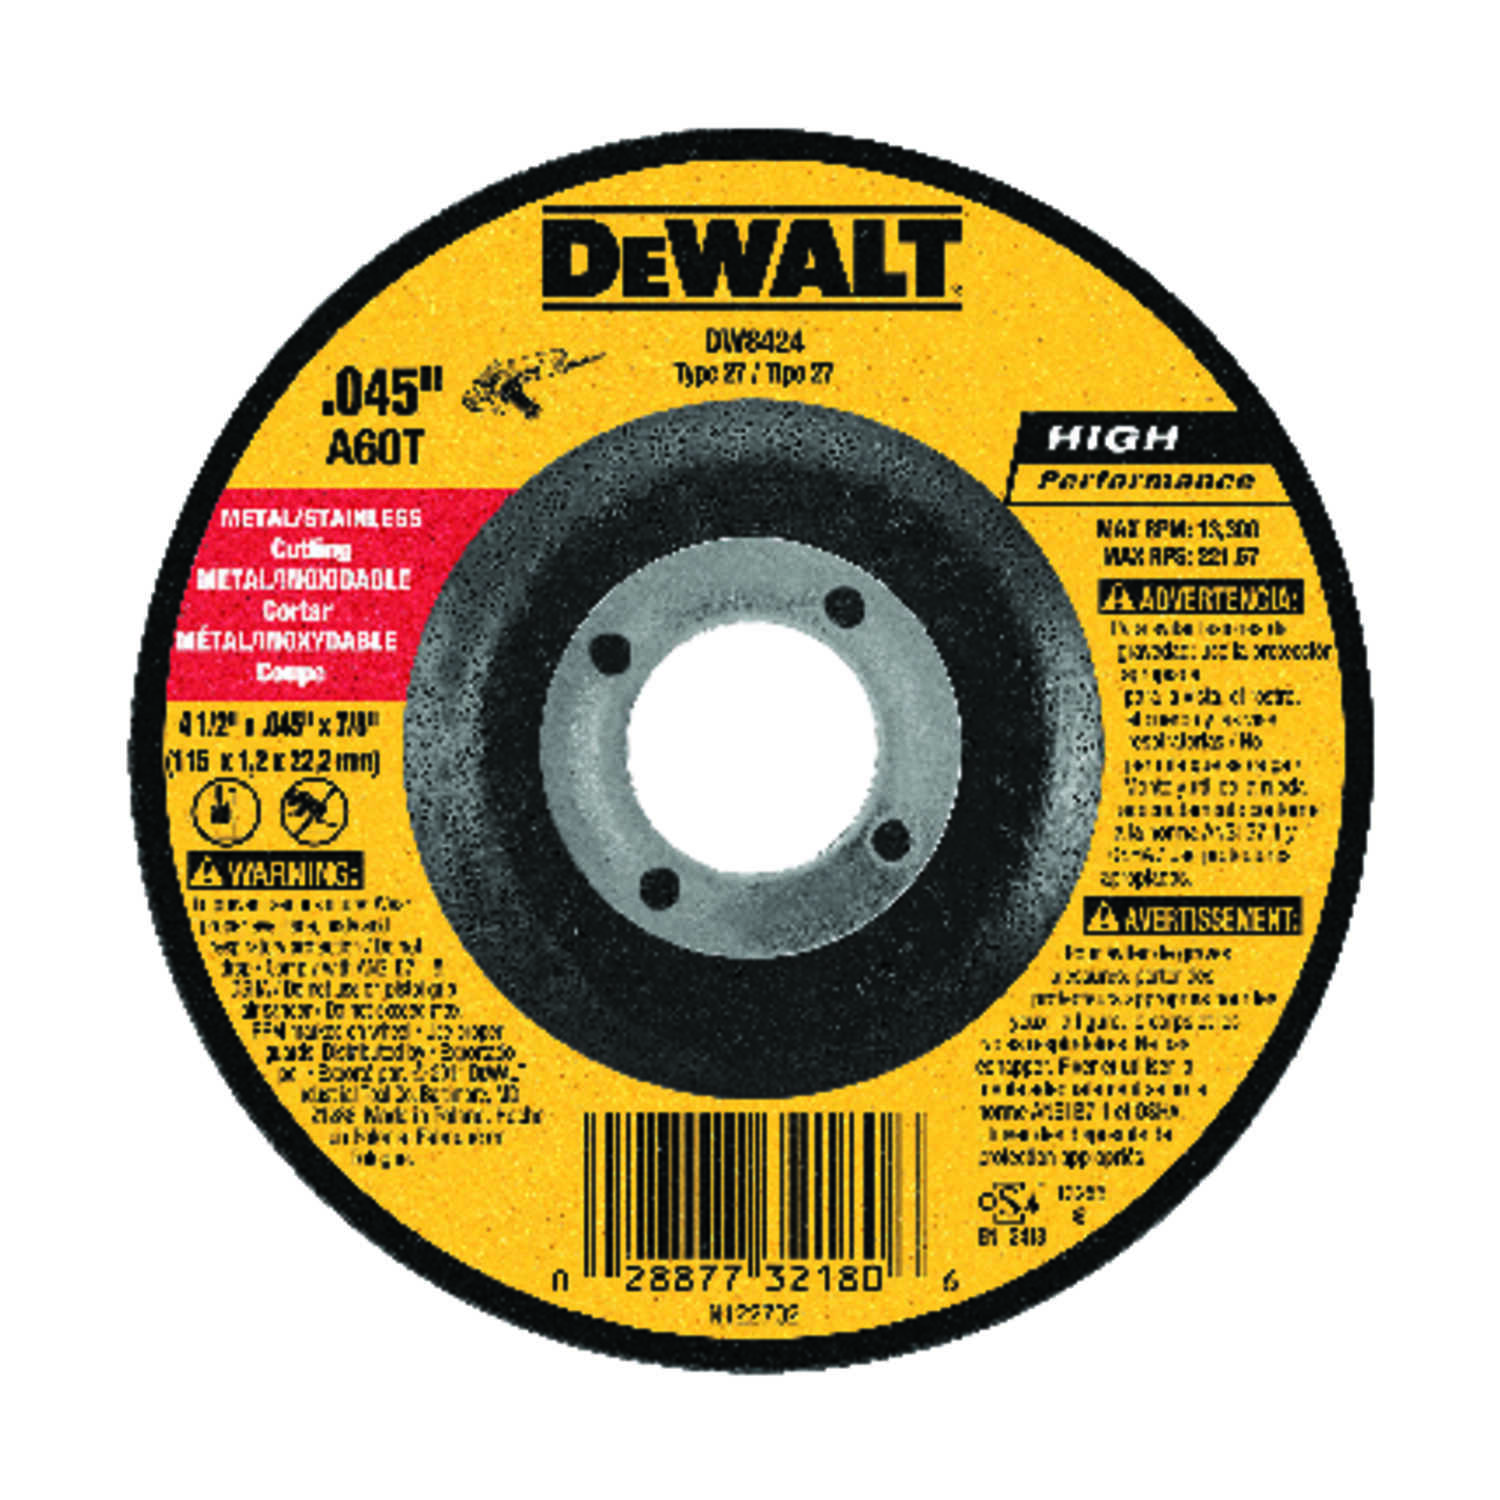 DeWalt  High Performance  Aluminum Oxide  4-1/2 in. .045 in.  x 7/8 in. in.  1 pc. Cut-Off Wheel